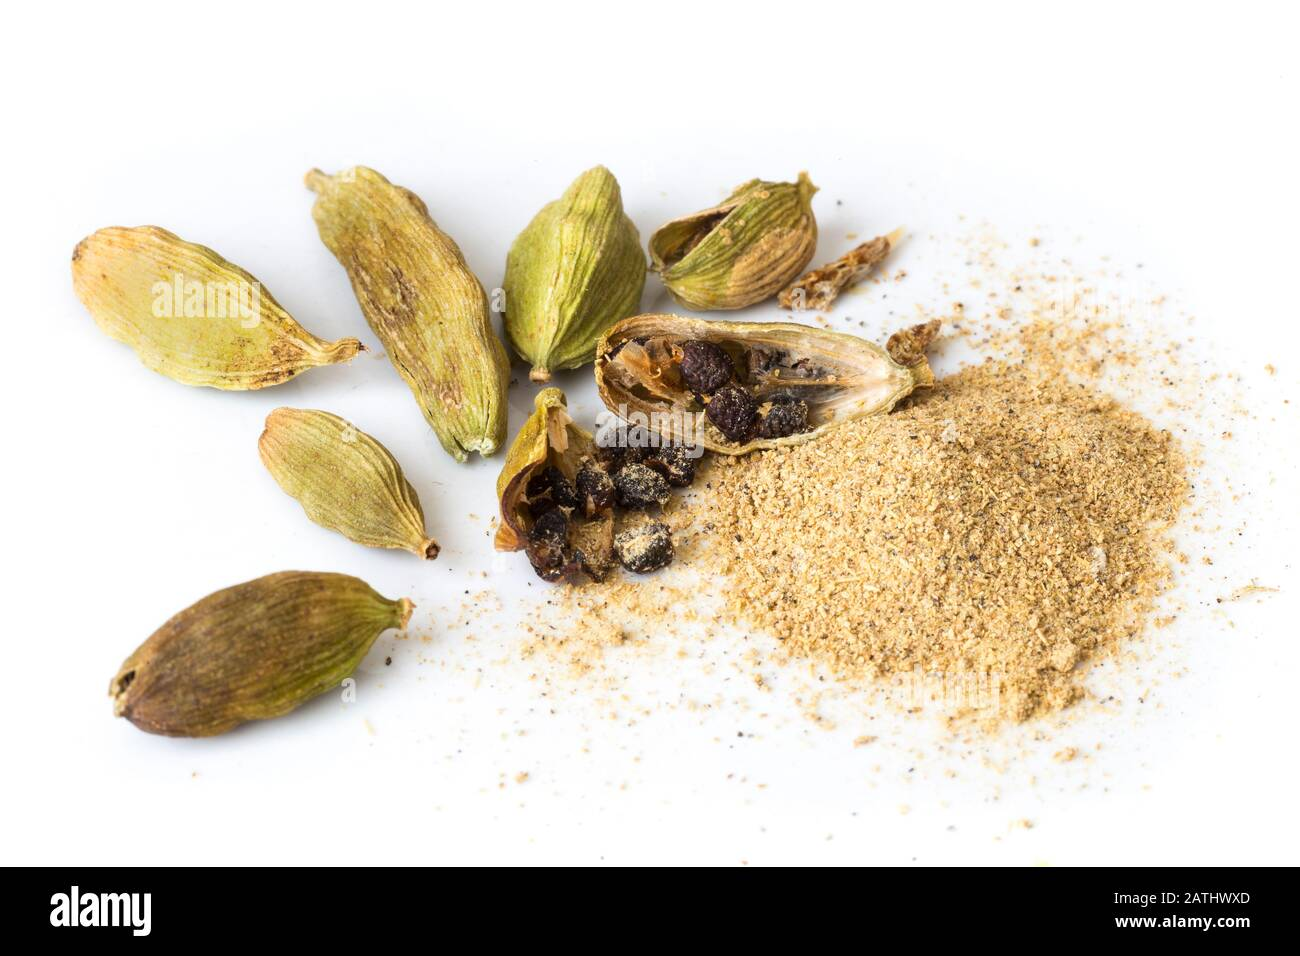 Page 3 Ground Cardamom High Resolution Stock Photography And Images Alamy